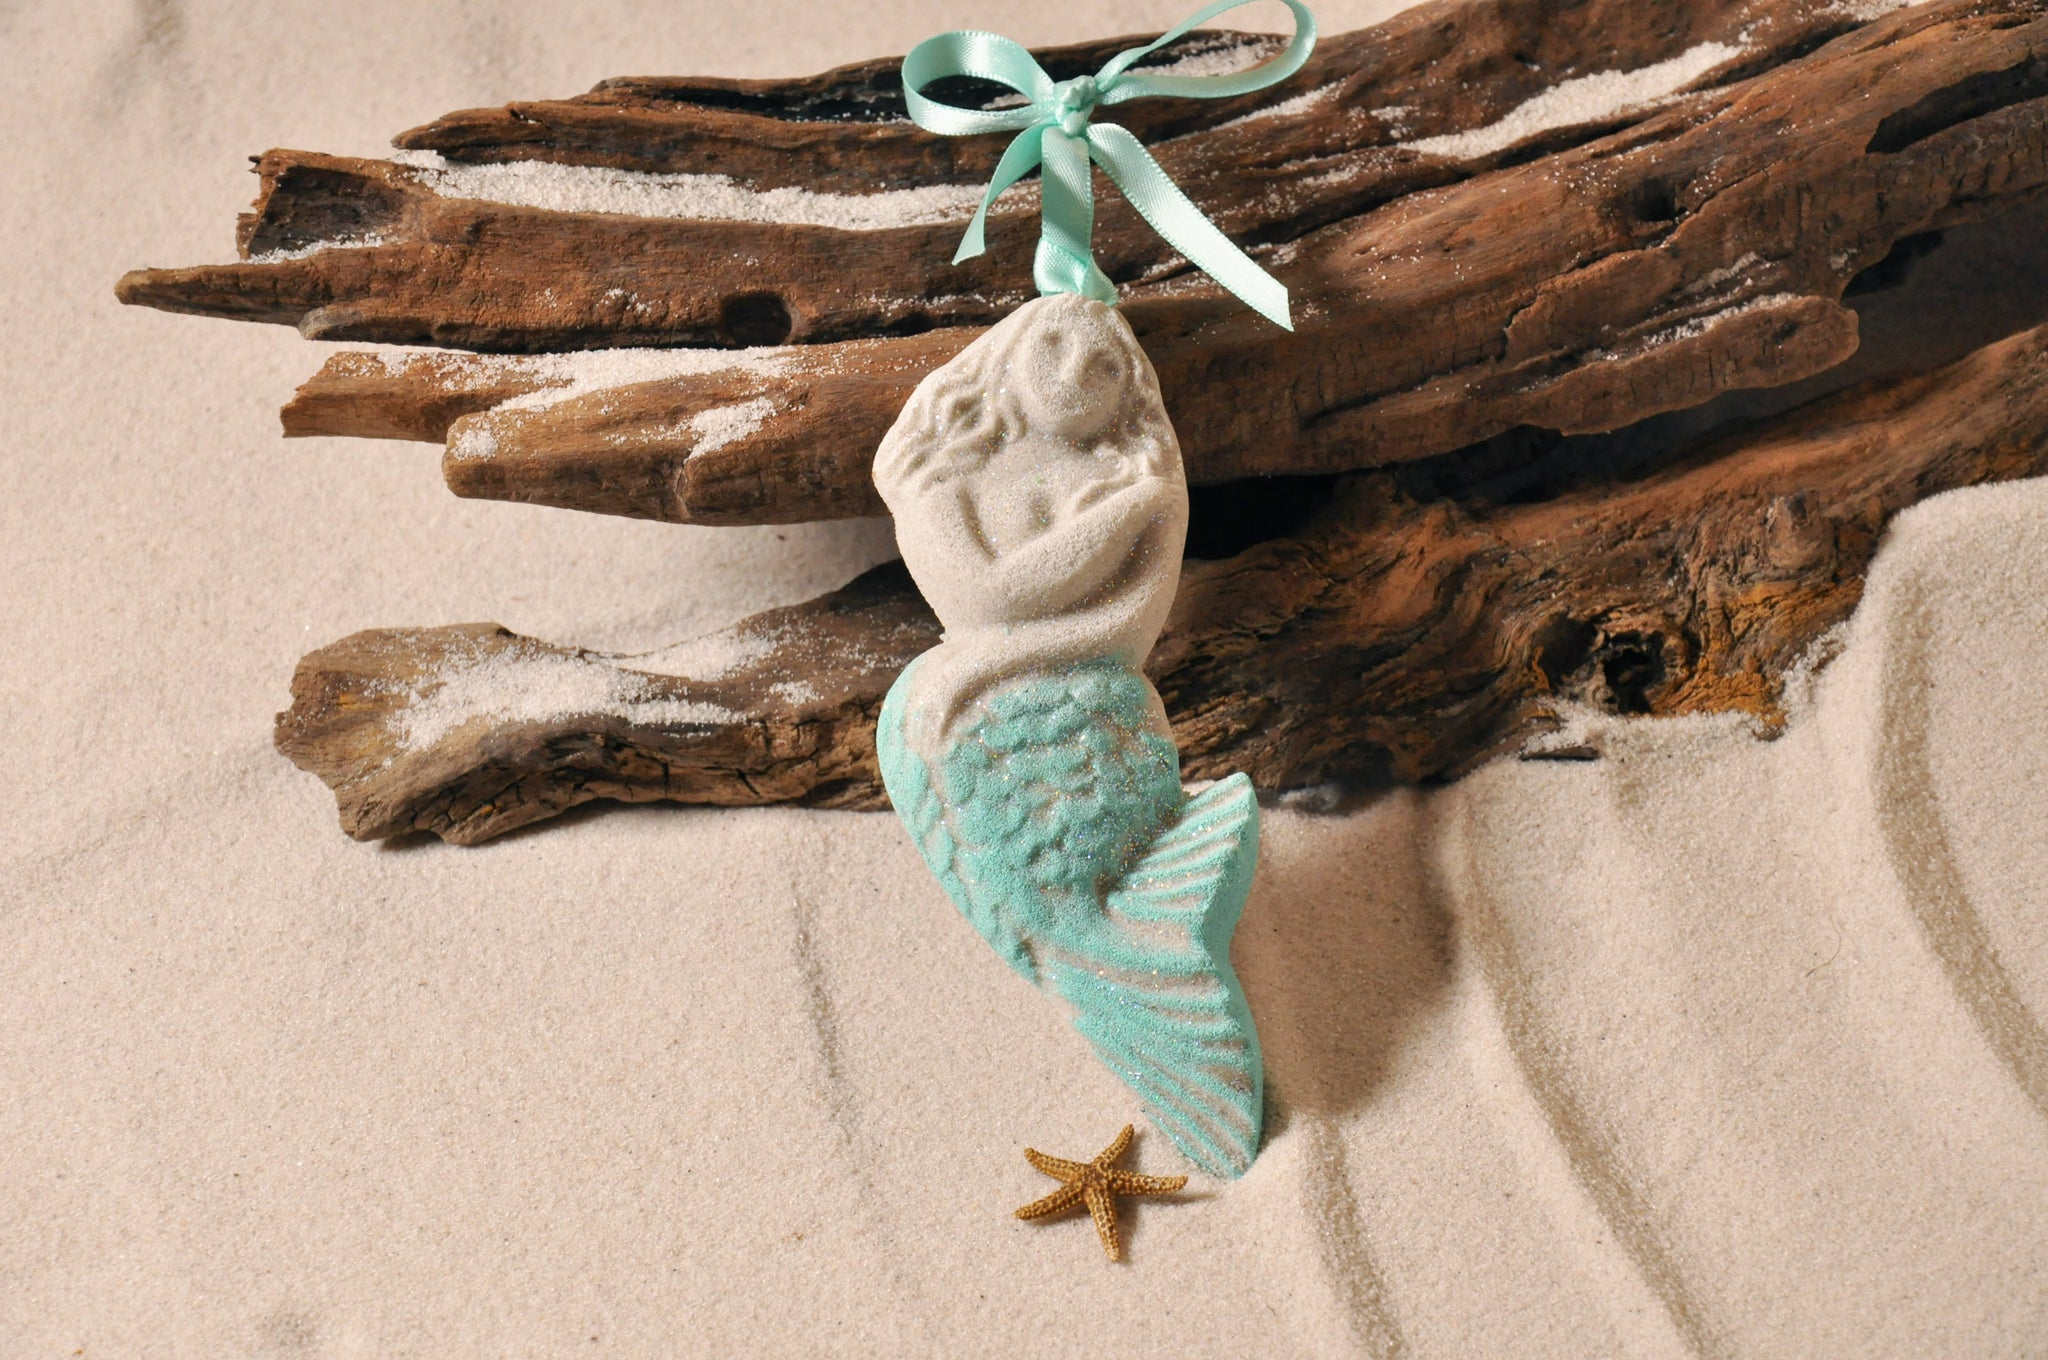 SAND ORNAMENT, CHRISTMAS TREE ORNAMENT, TROPICAL CHRISTMAS DECORATIONS, COASTAL ORNAMENT, SAND ORNAMENT, TROPICAL ORNAMENT, ARENOPHILE, SANTA, CHRISTMAS ORNAMENT, FLORIDA, MERMAID